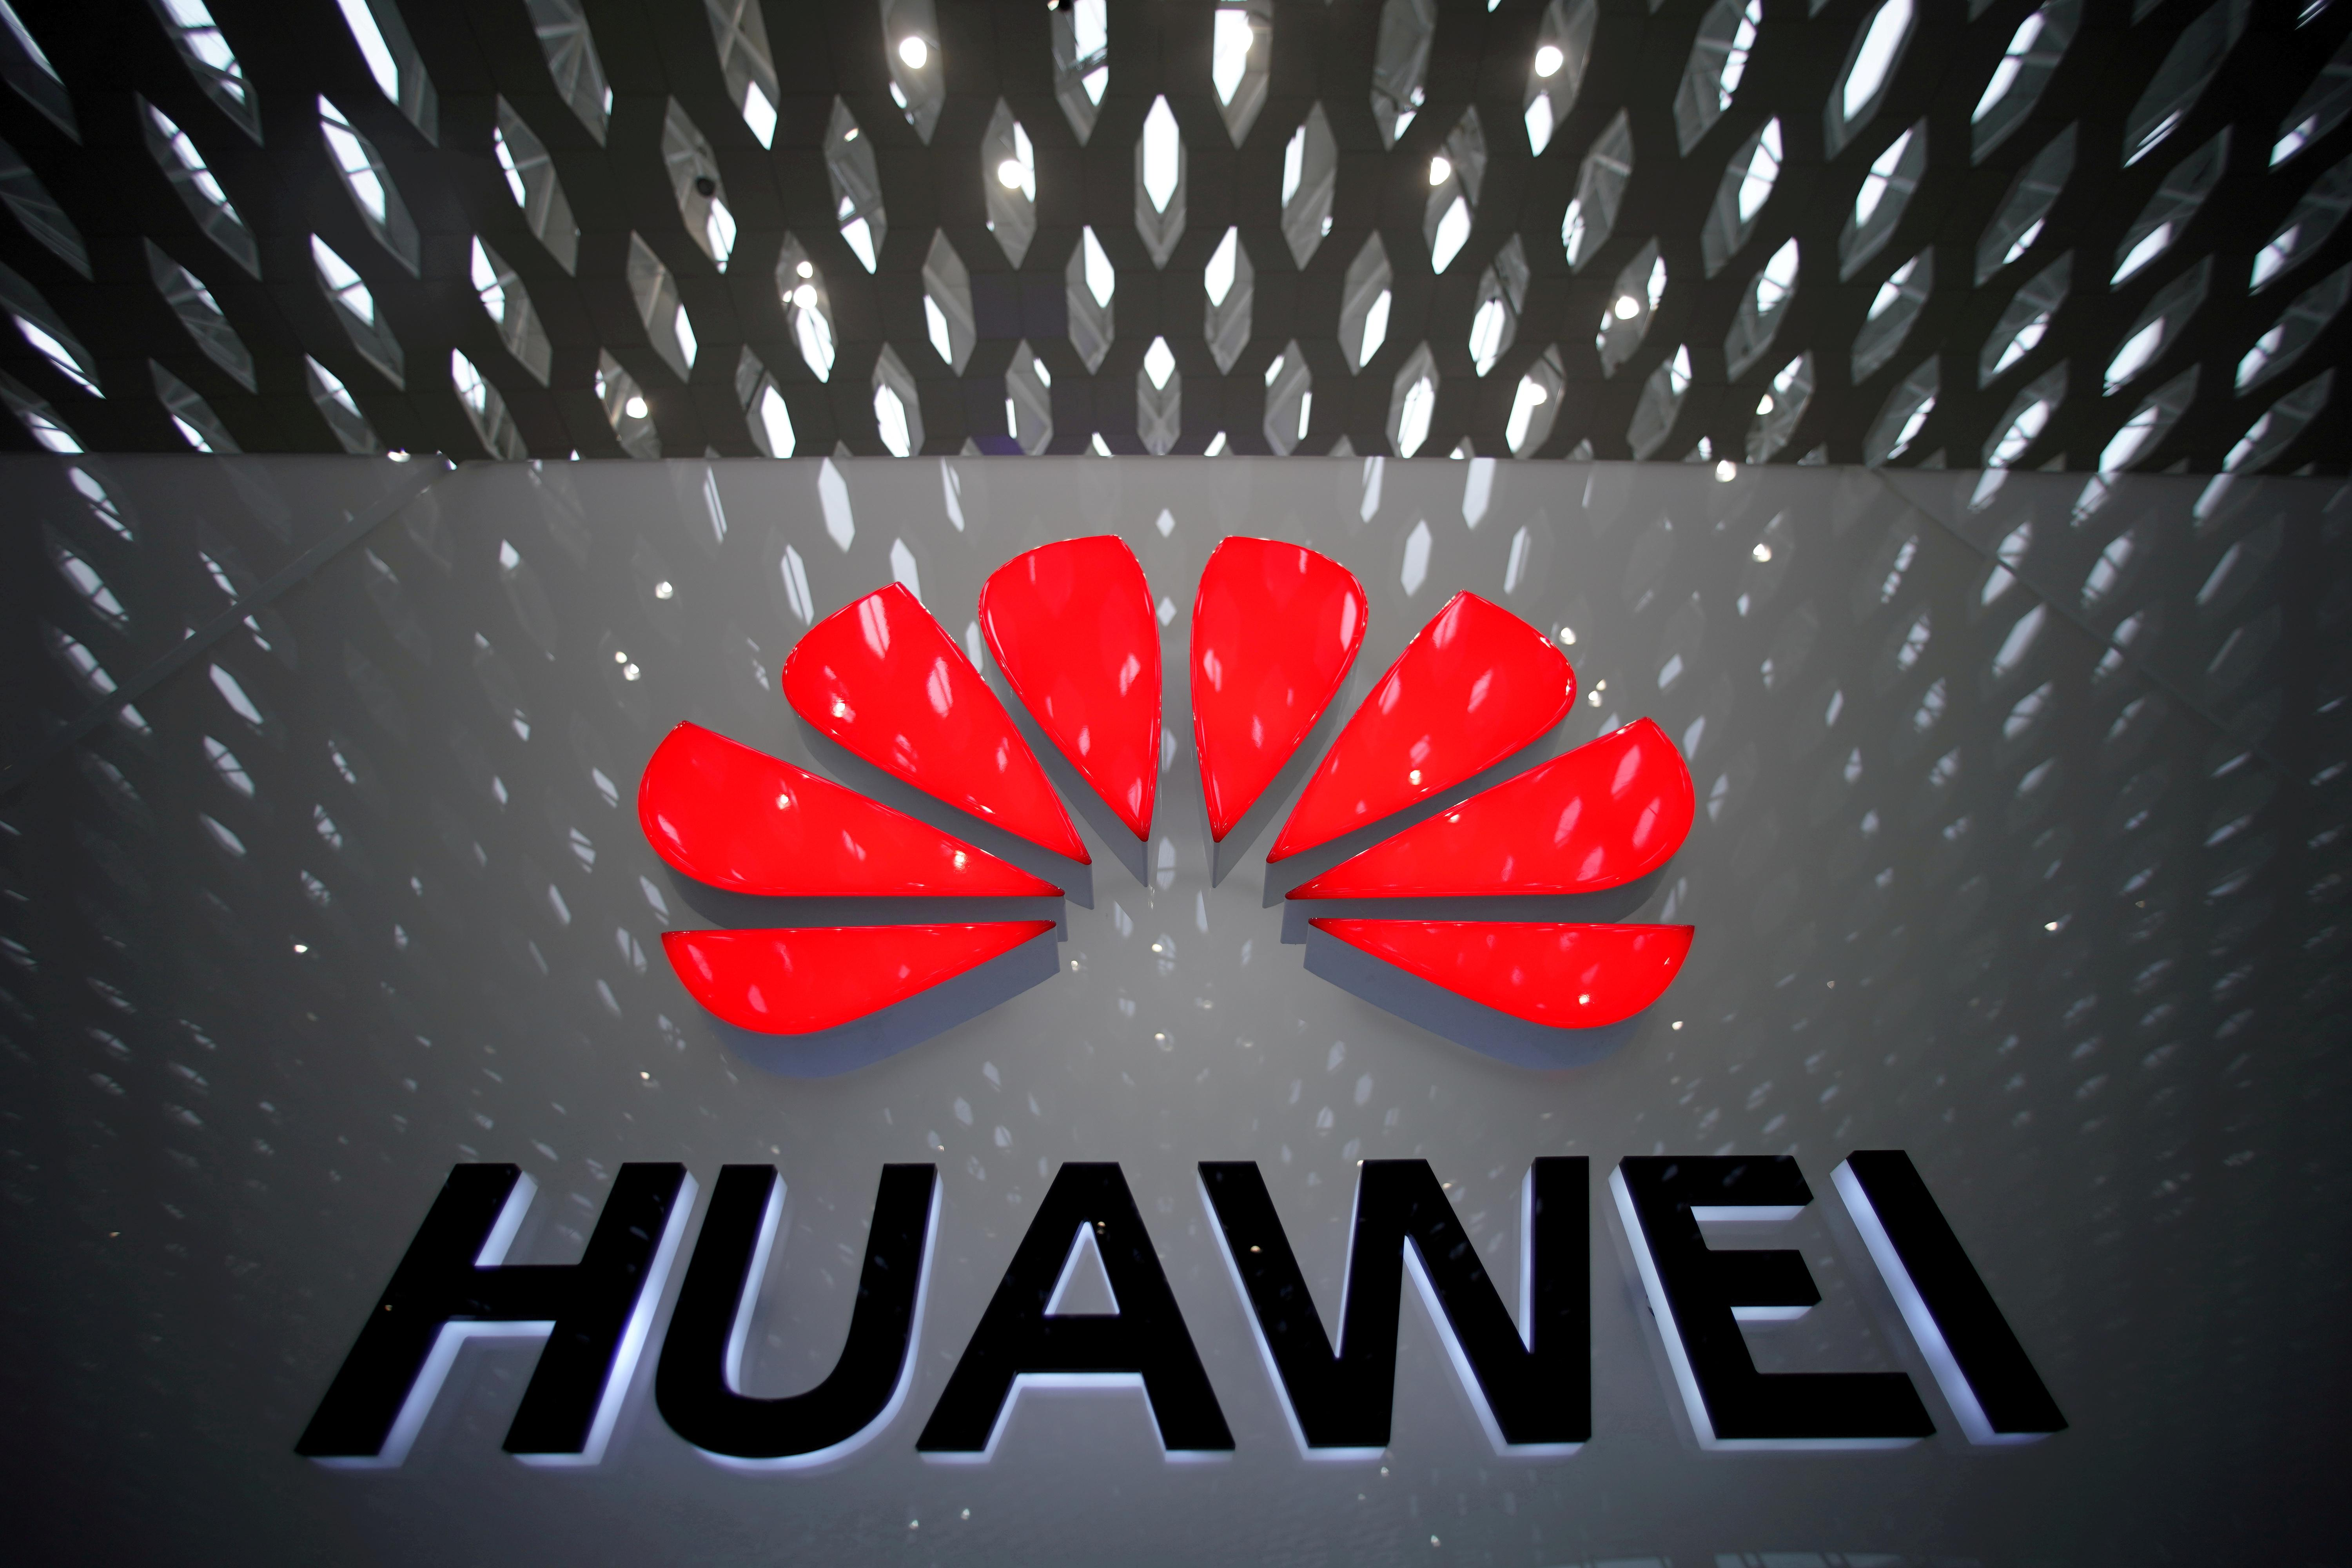 Huawei in early talks with U.S. firms to license 5G platform - Huawei executive